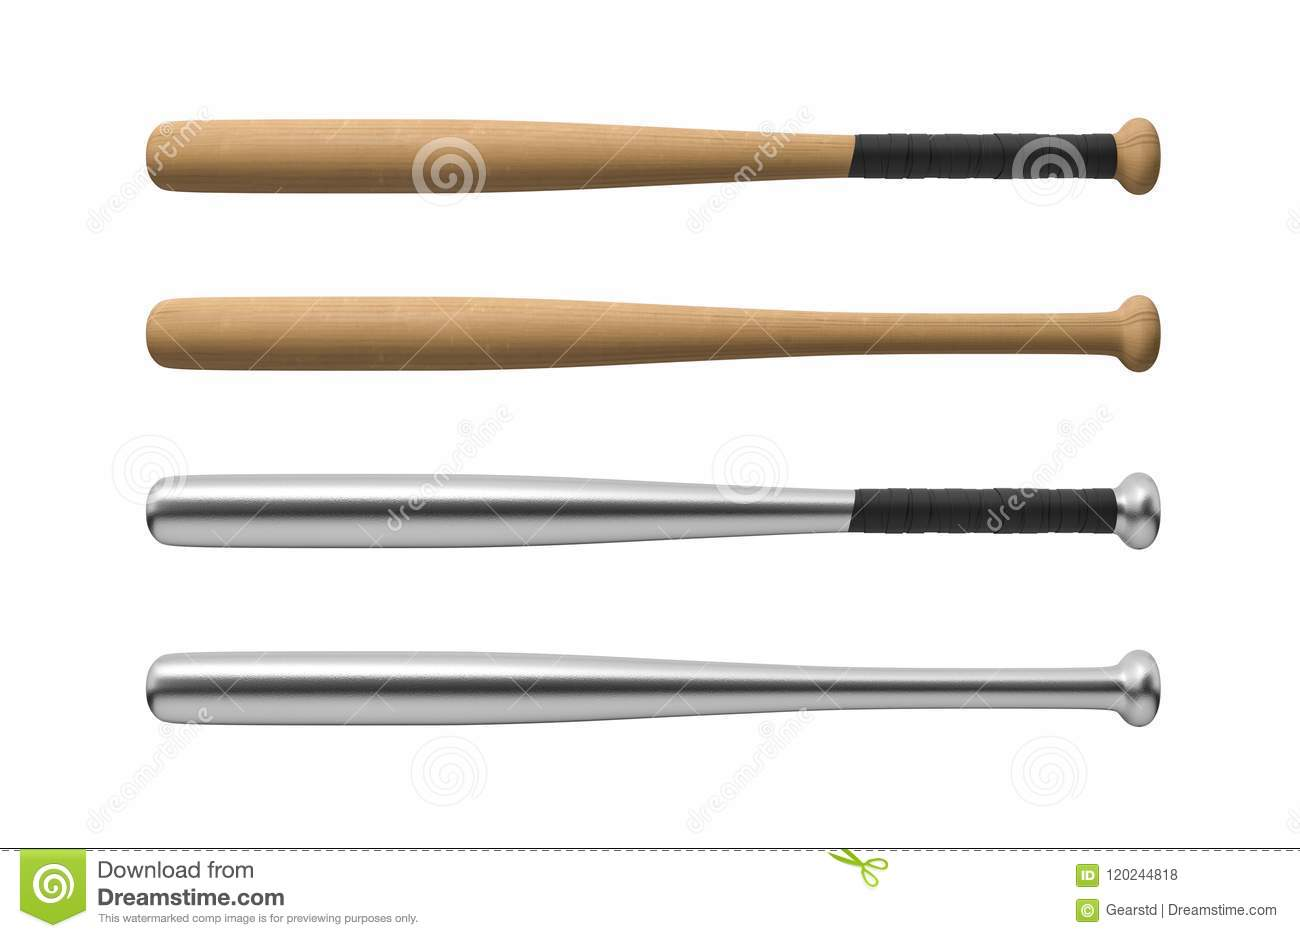 3d Rendering Of Four Baseball Bats Made Of Wood And Steel